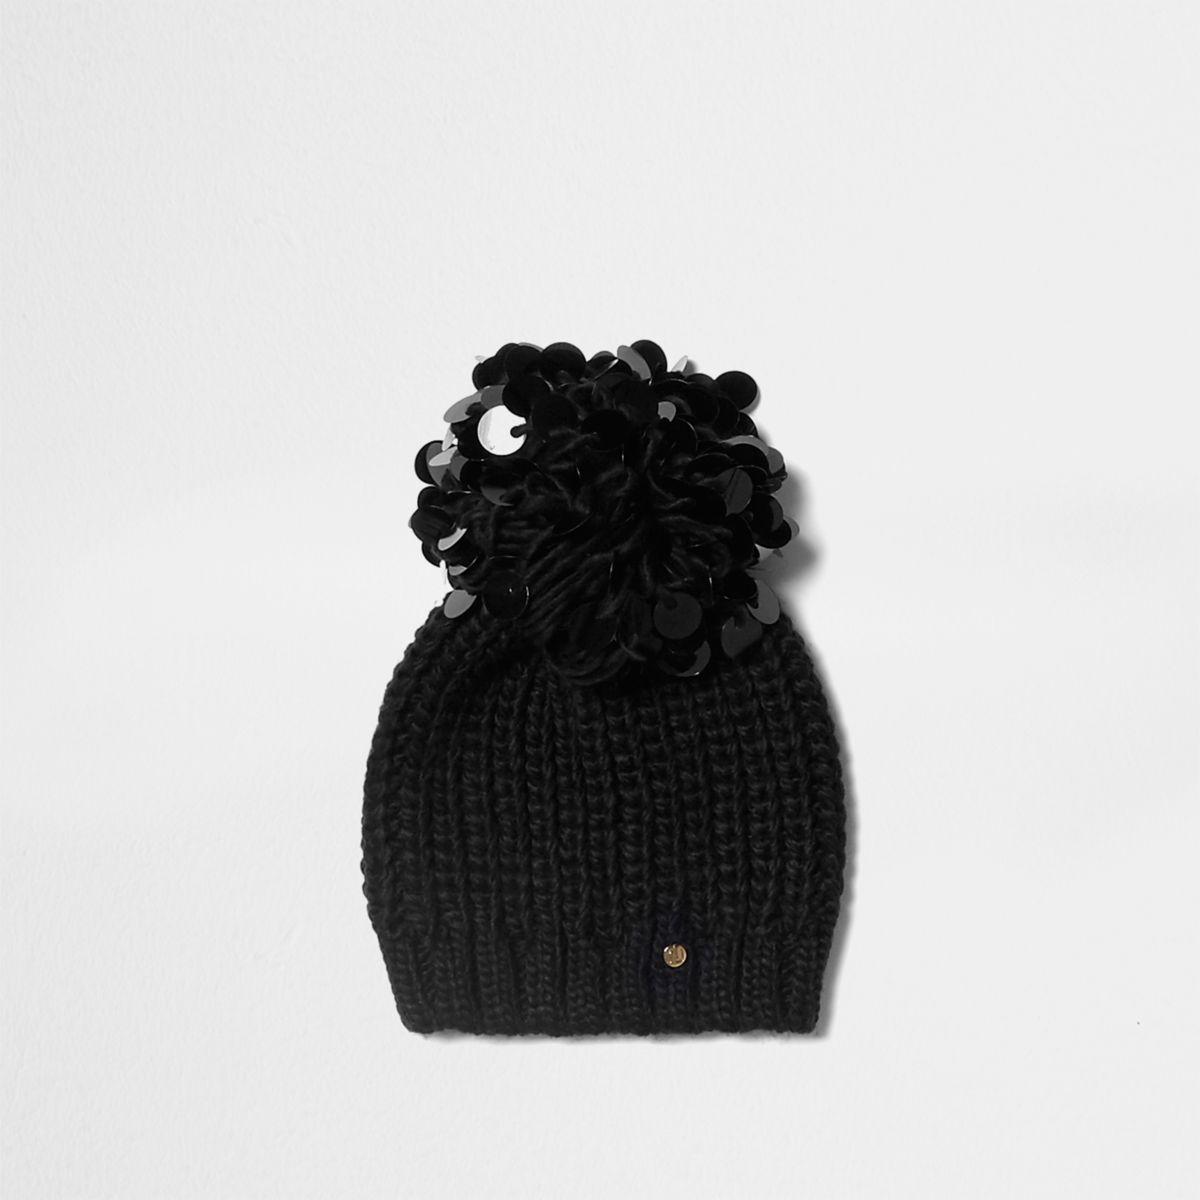 Black sequin pom pom beanie hat